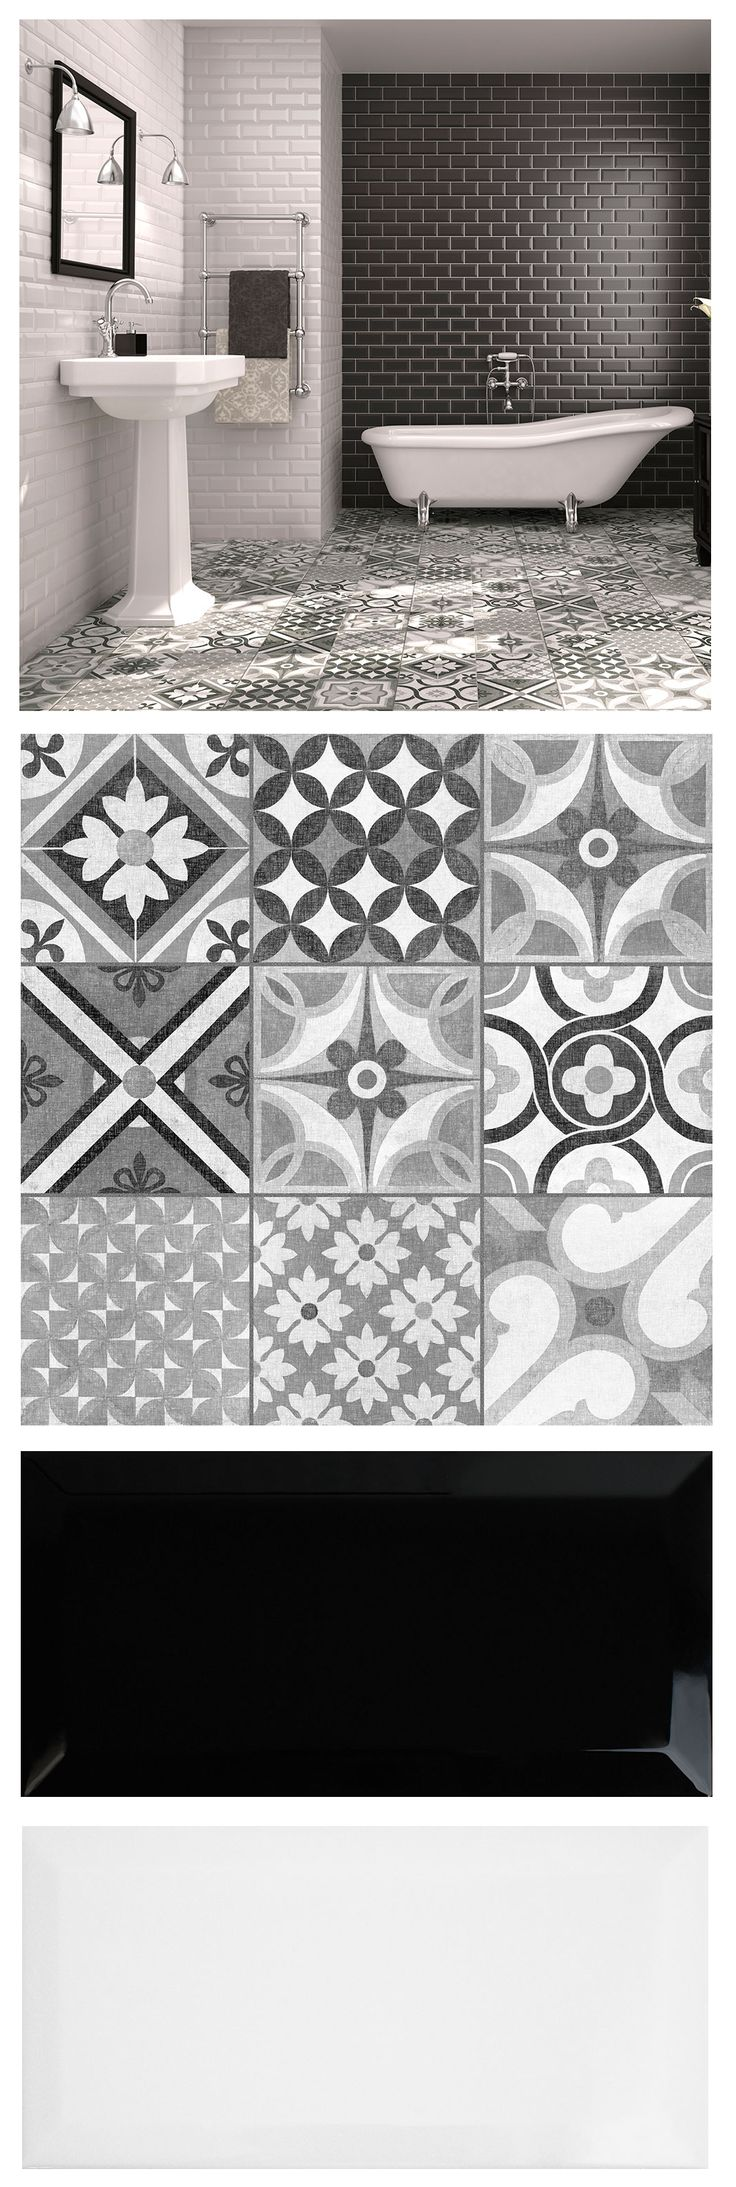 Mix Brick Shaped Metros And Patterned Zeinah Tiles For A Striking Monochrome Moroccan Mash Up